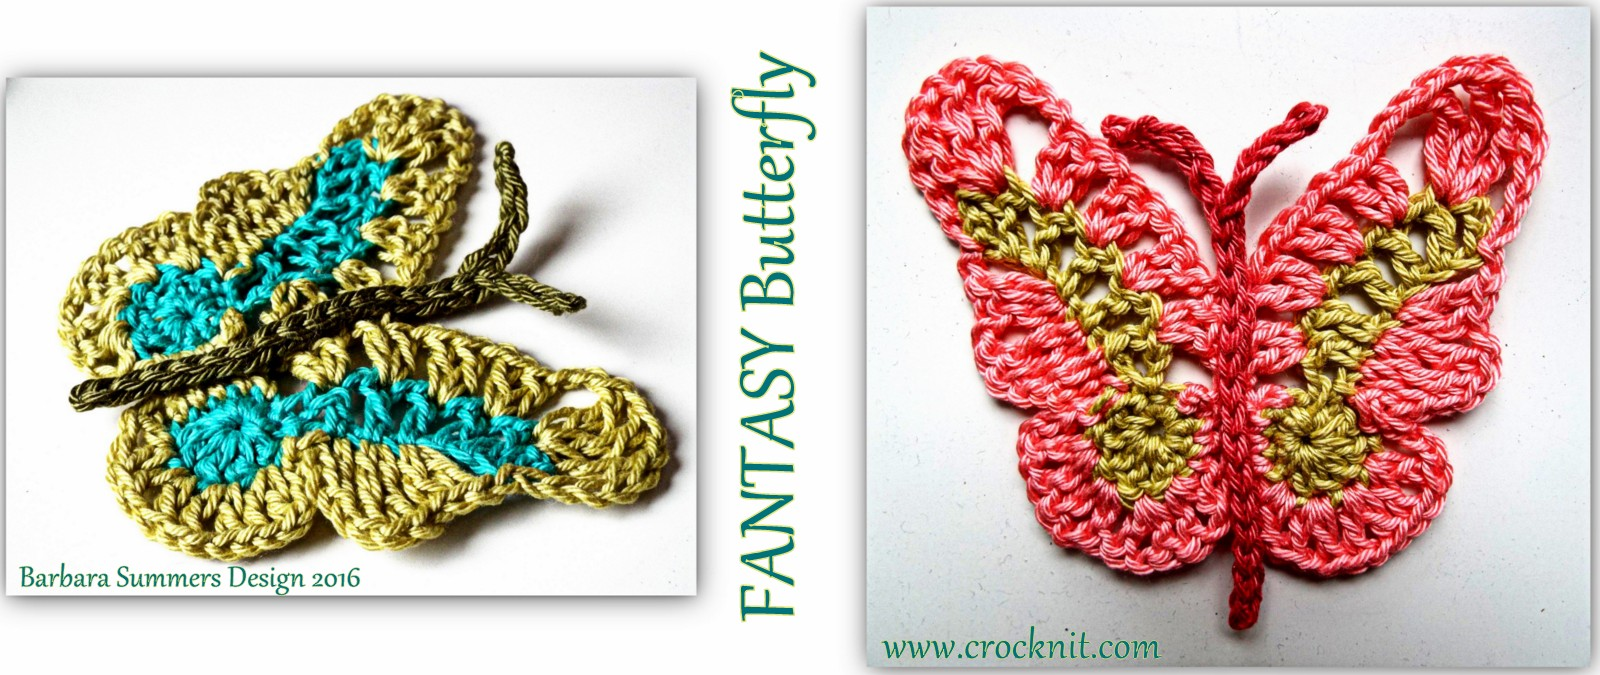 Crochet Fantasy : crochet patterns, how to crochet, butterfly, butterflies, fantasy,